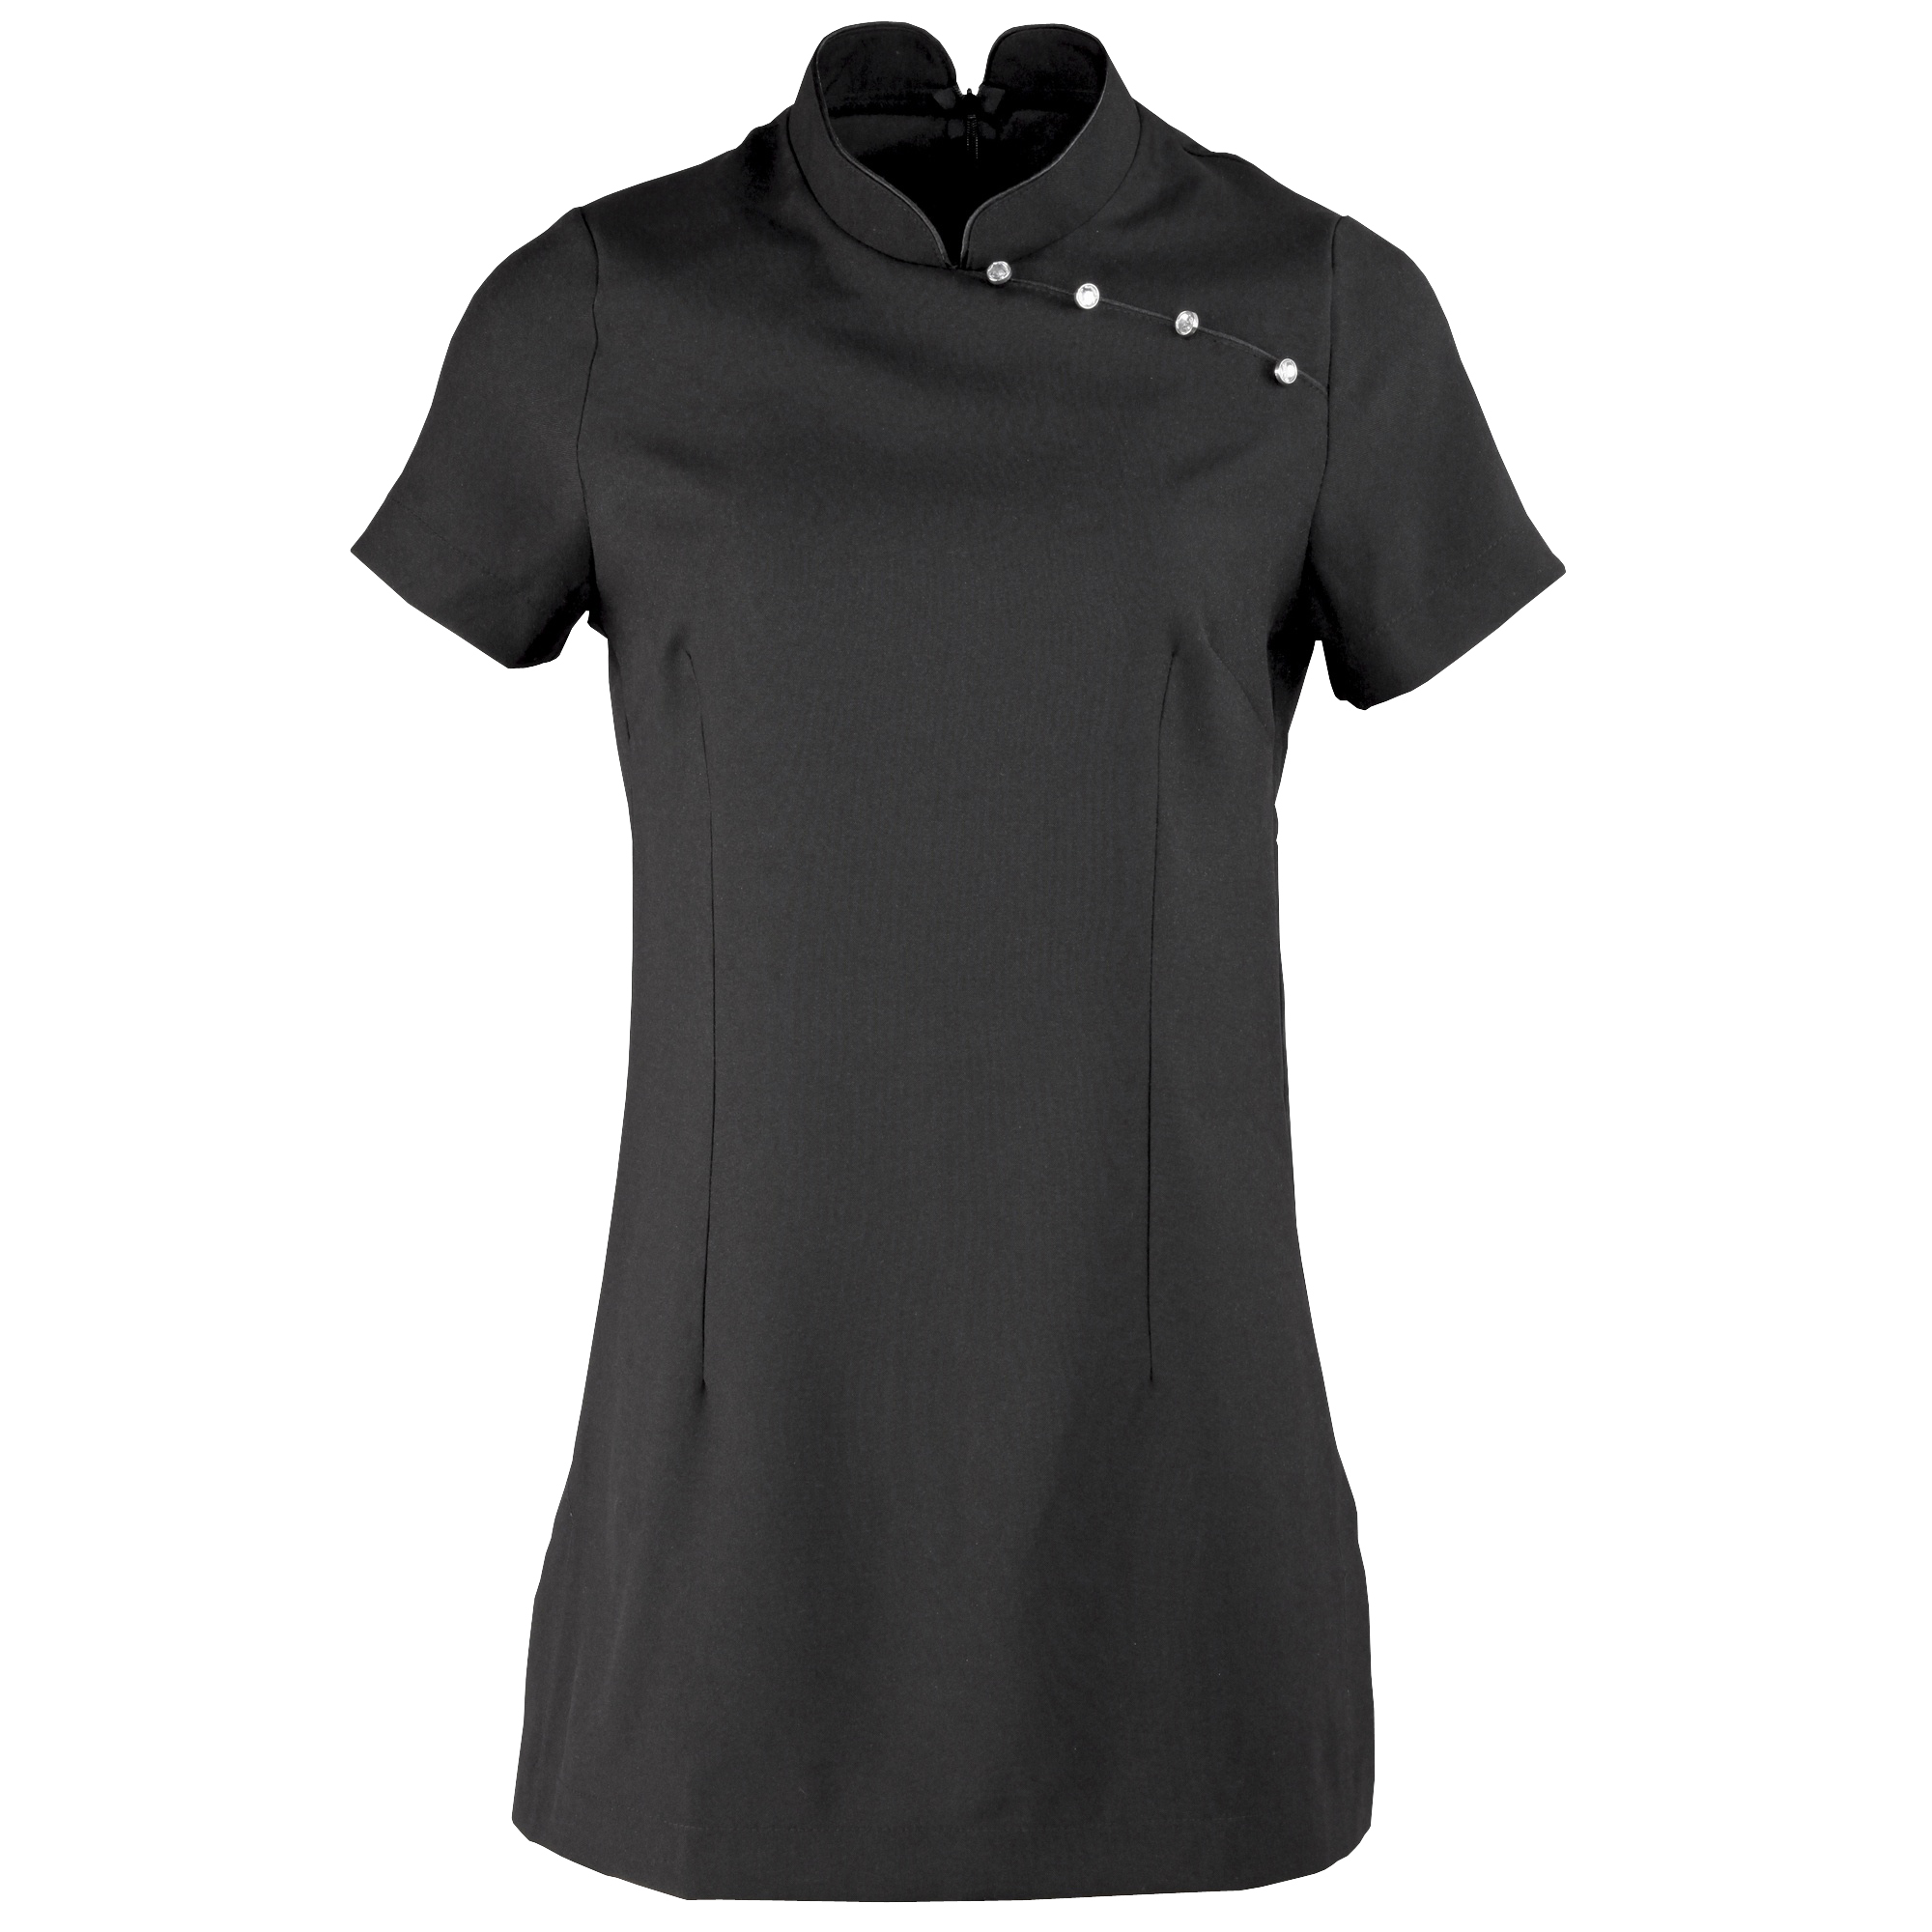 Find great deals on eBay for Work Tunic in Tops and Blouses for All Women. Shop with confidence.